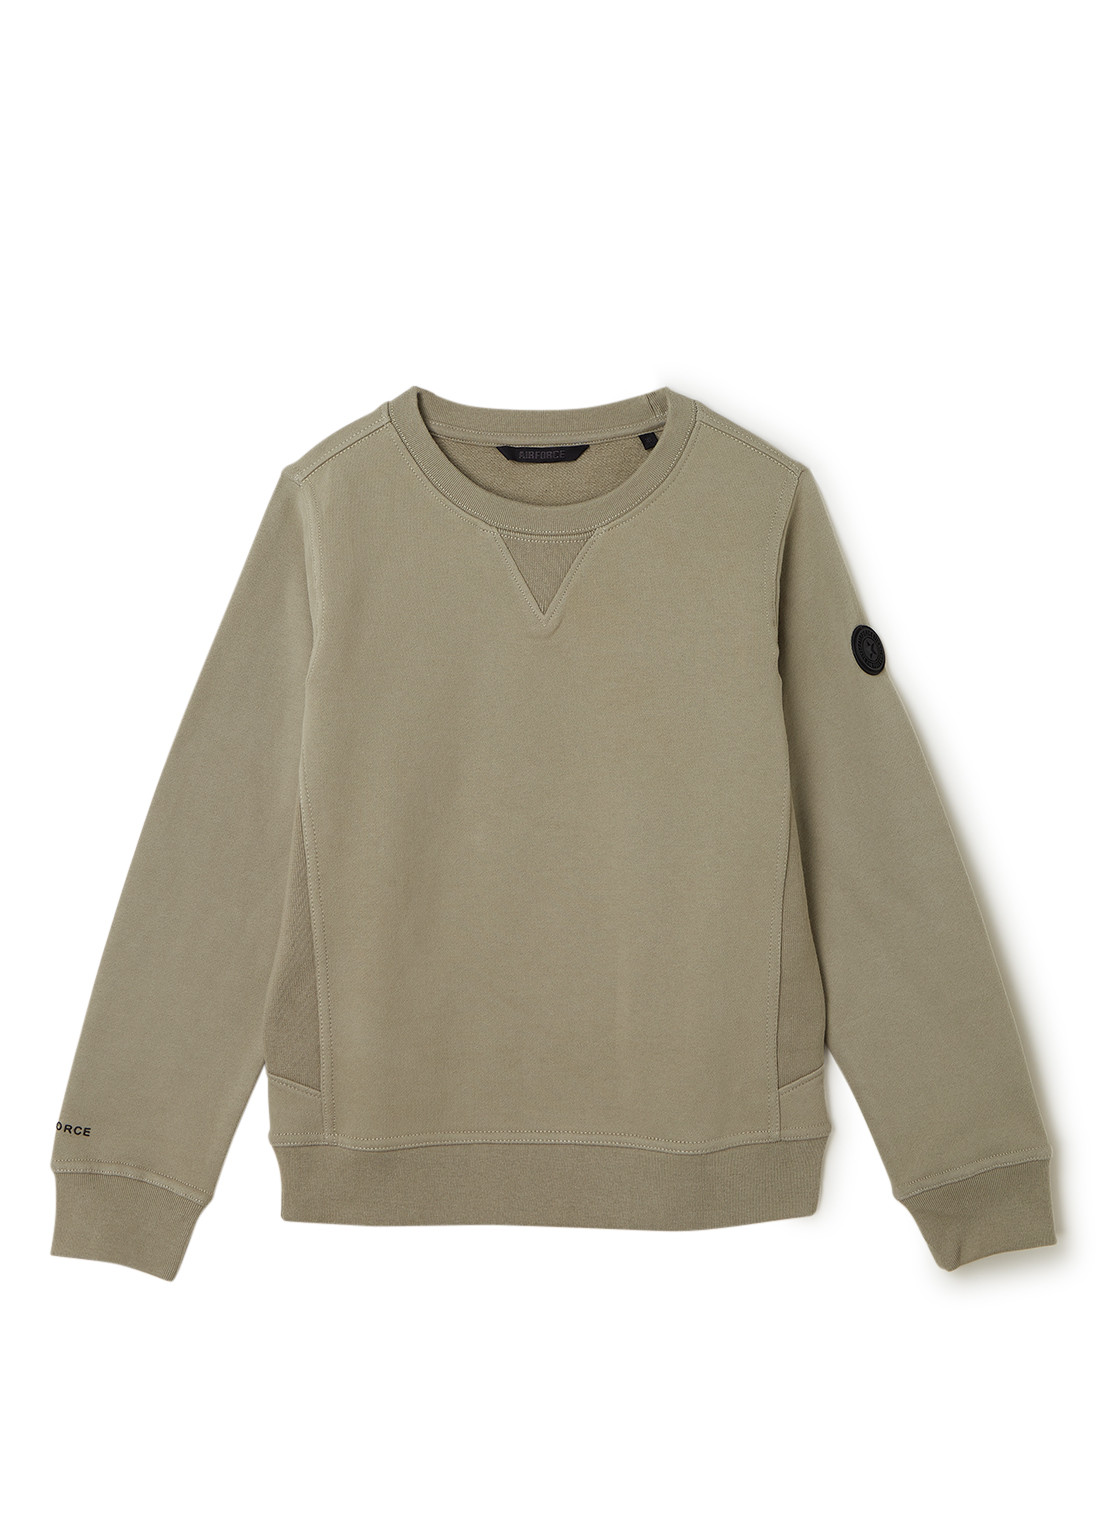 Airforce Sweater met merkapplicatie